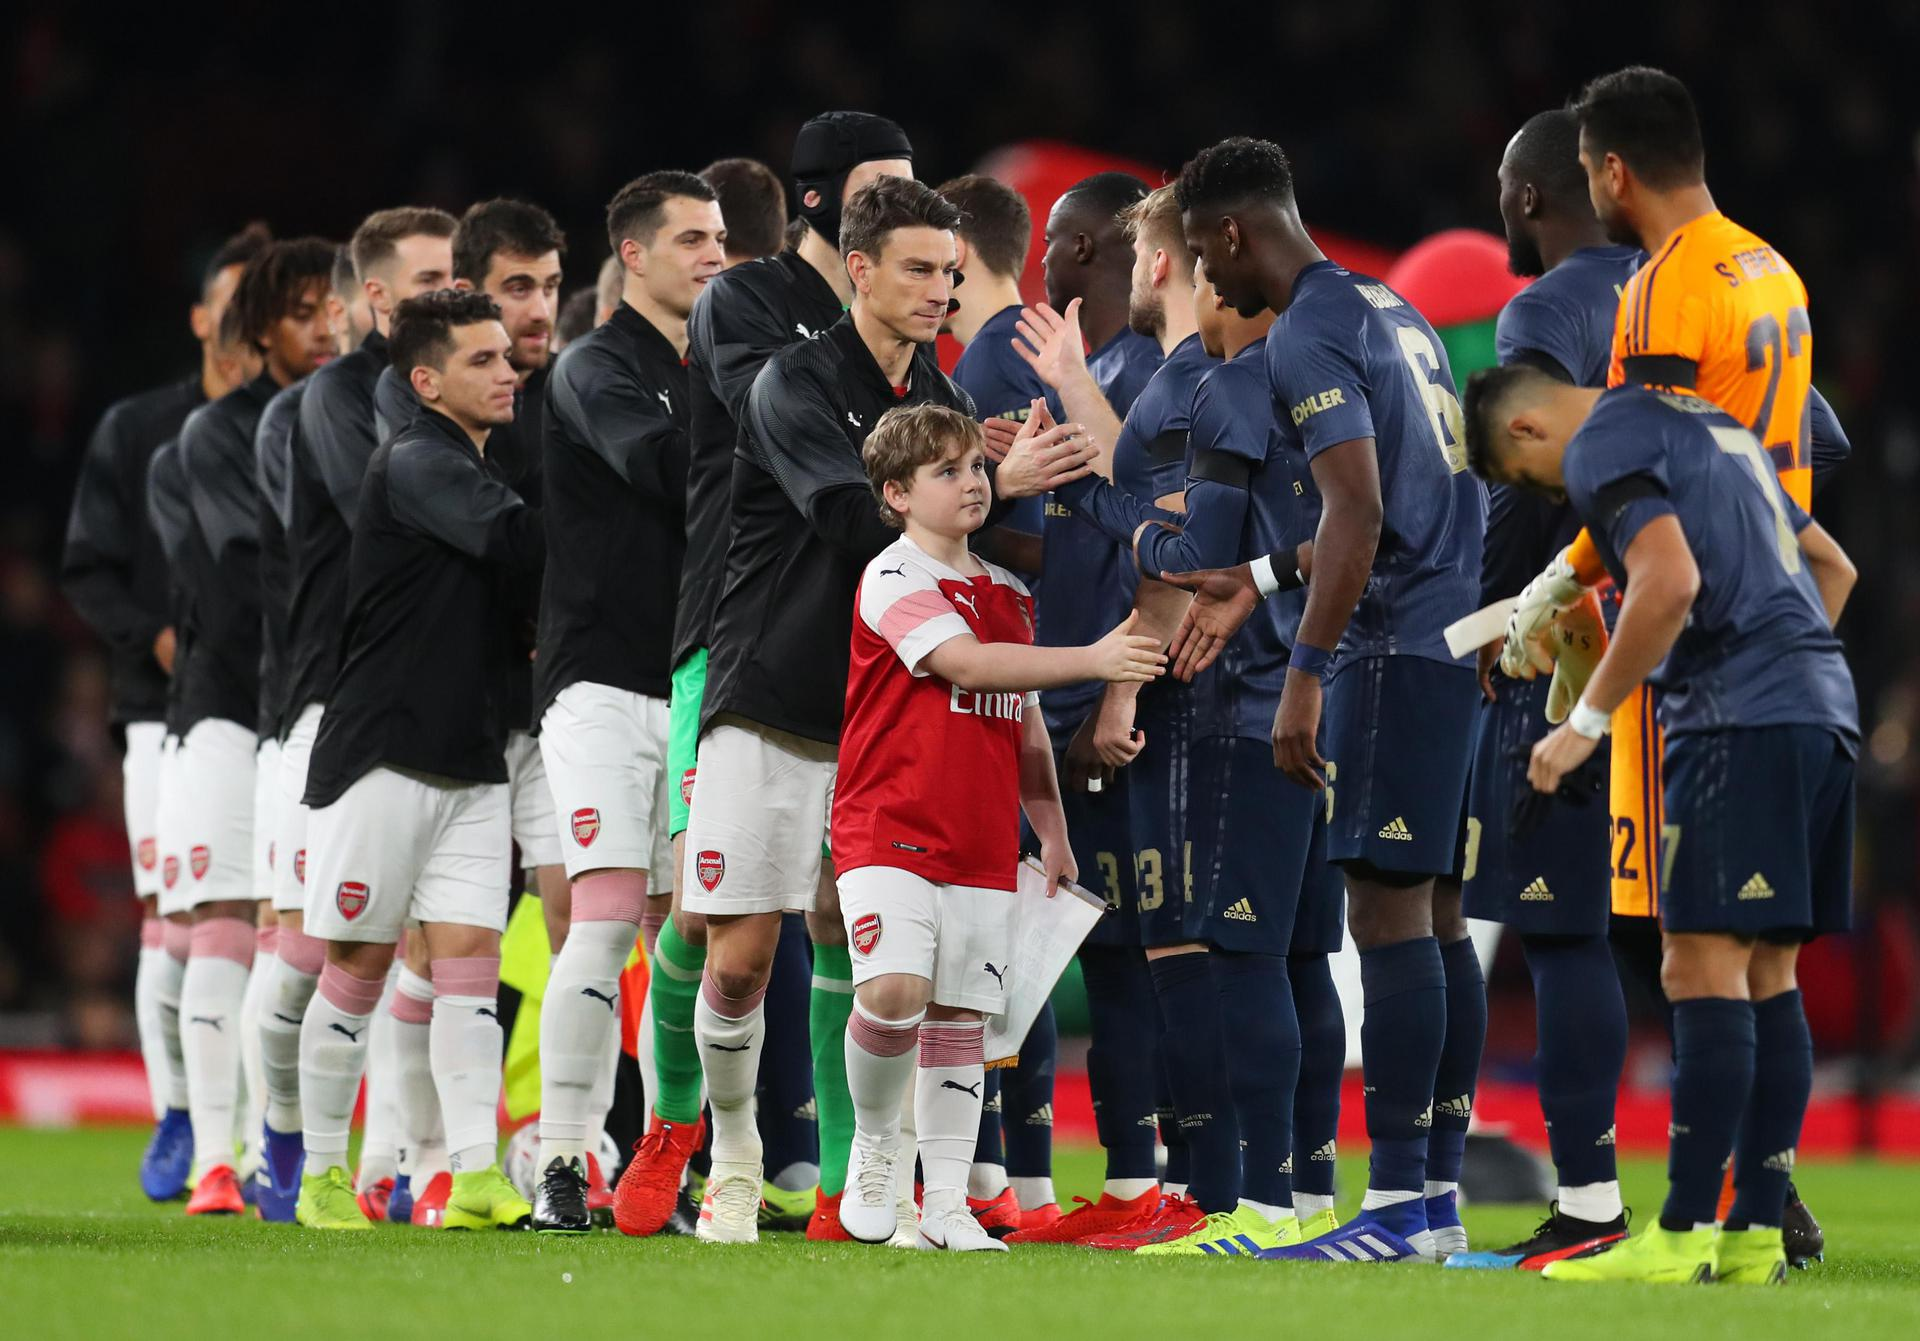 United and Arsenal players shake hands.